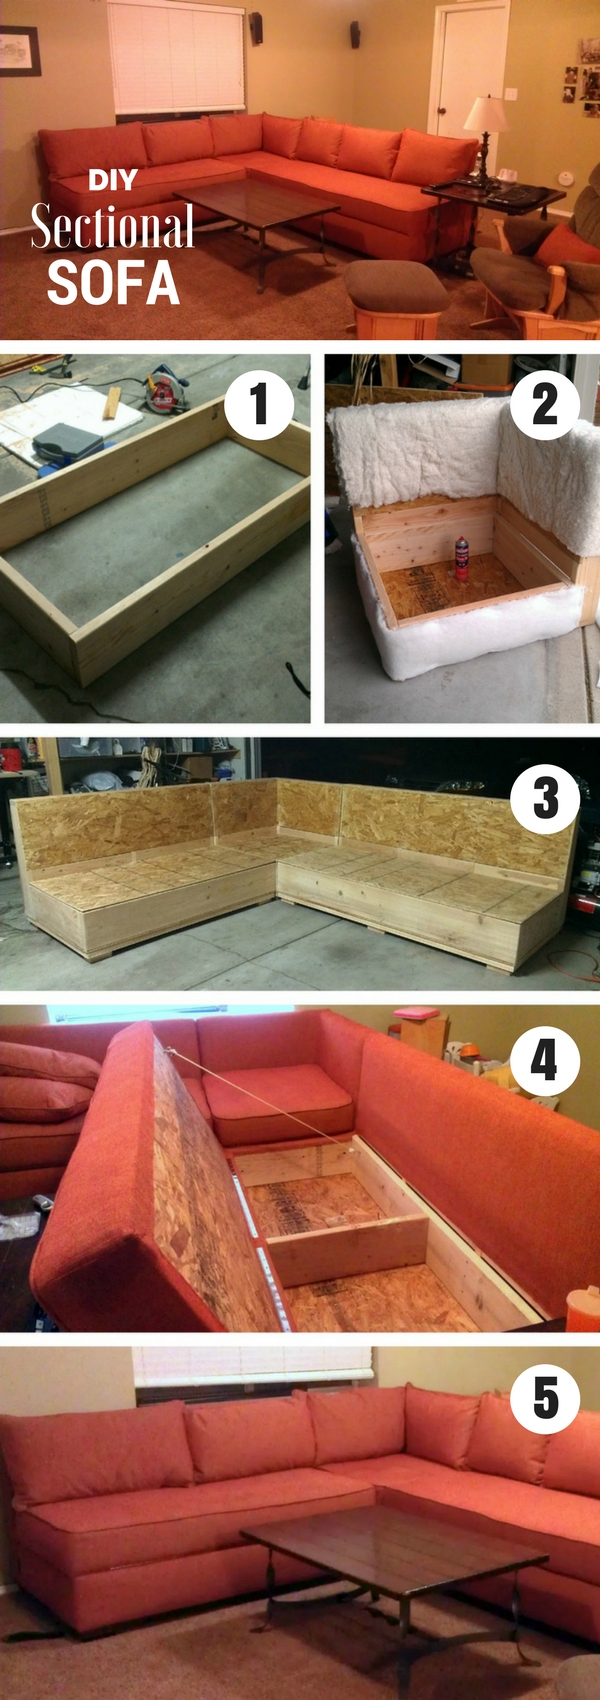 Check out how to build a DIY sectional sofa from plans from Ana White